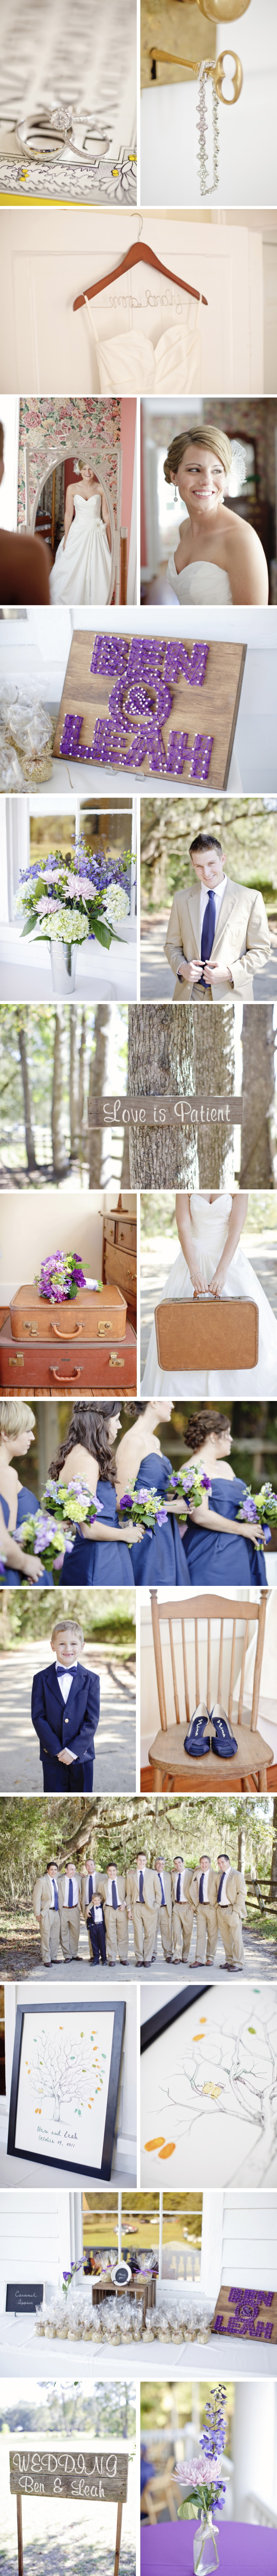 wedding blogs | wedding pictures